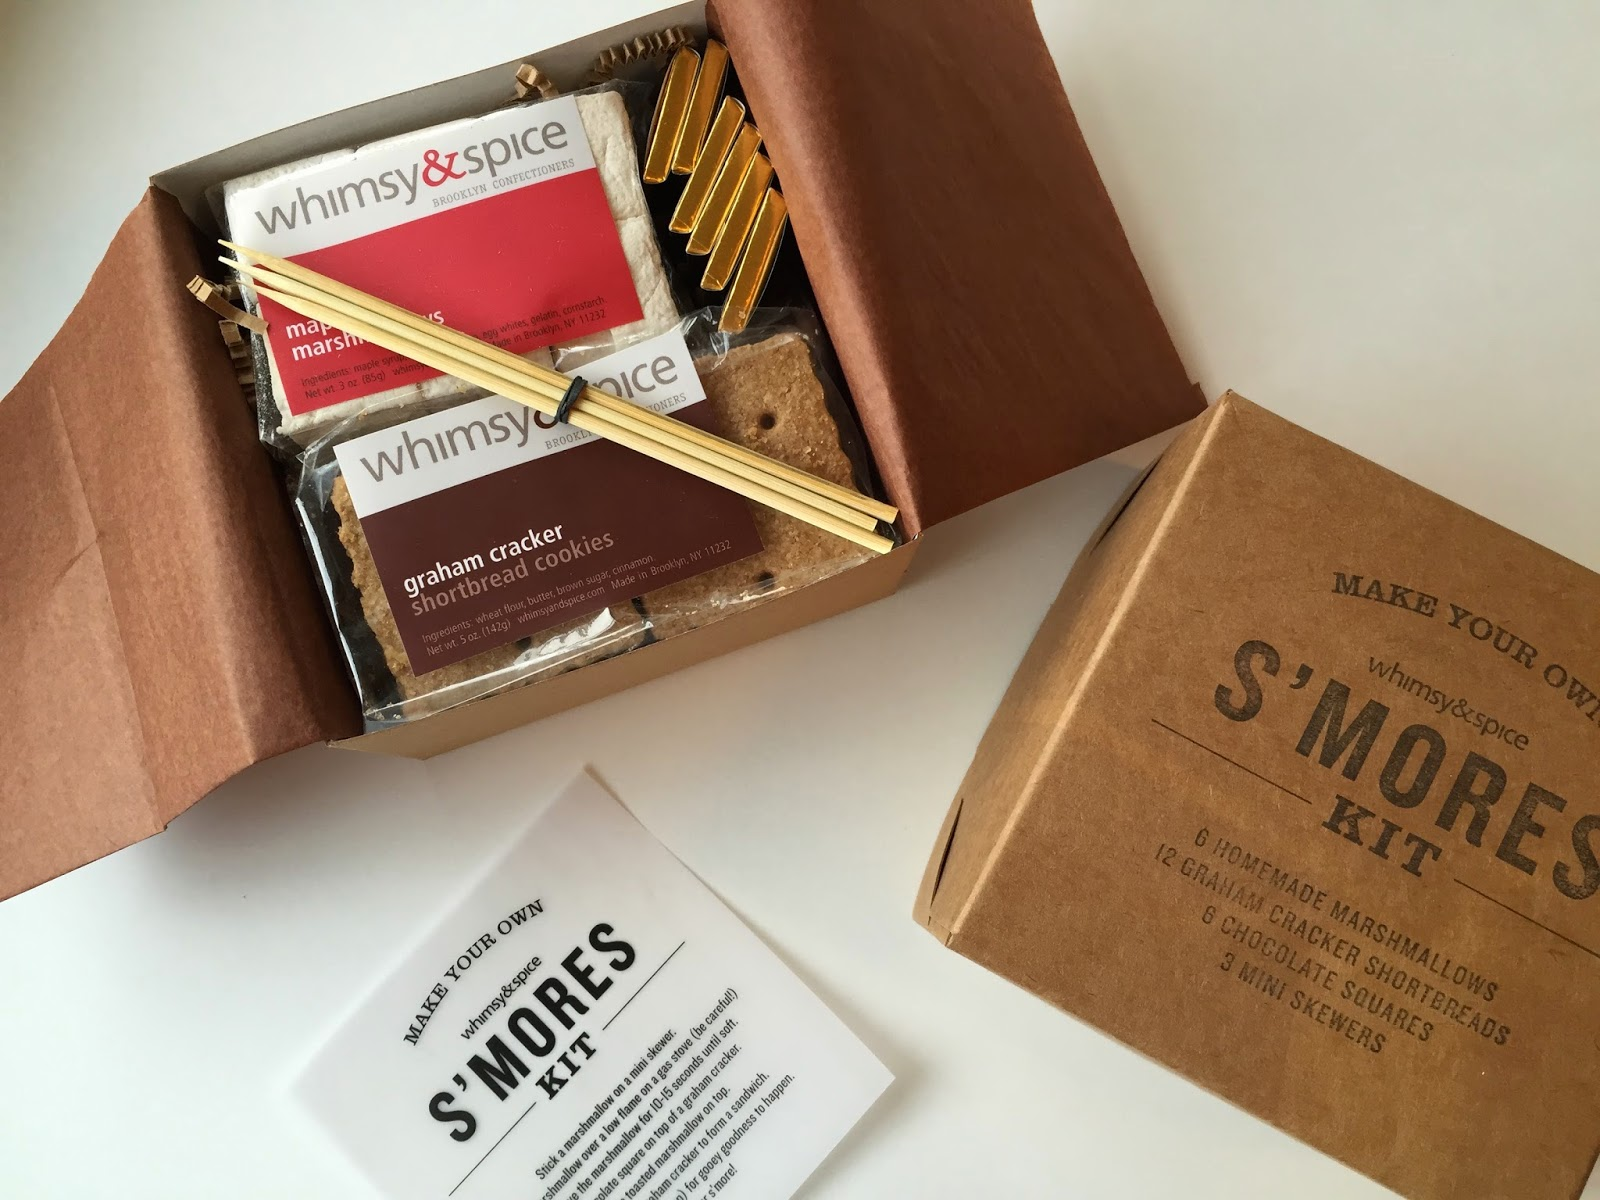 whimsy and spice smores kit from print em shop